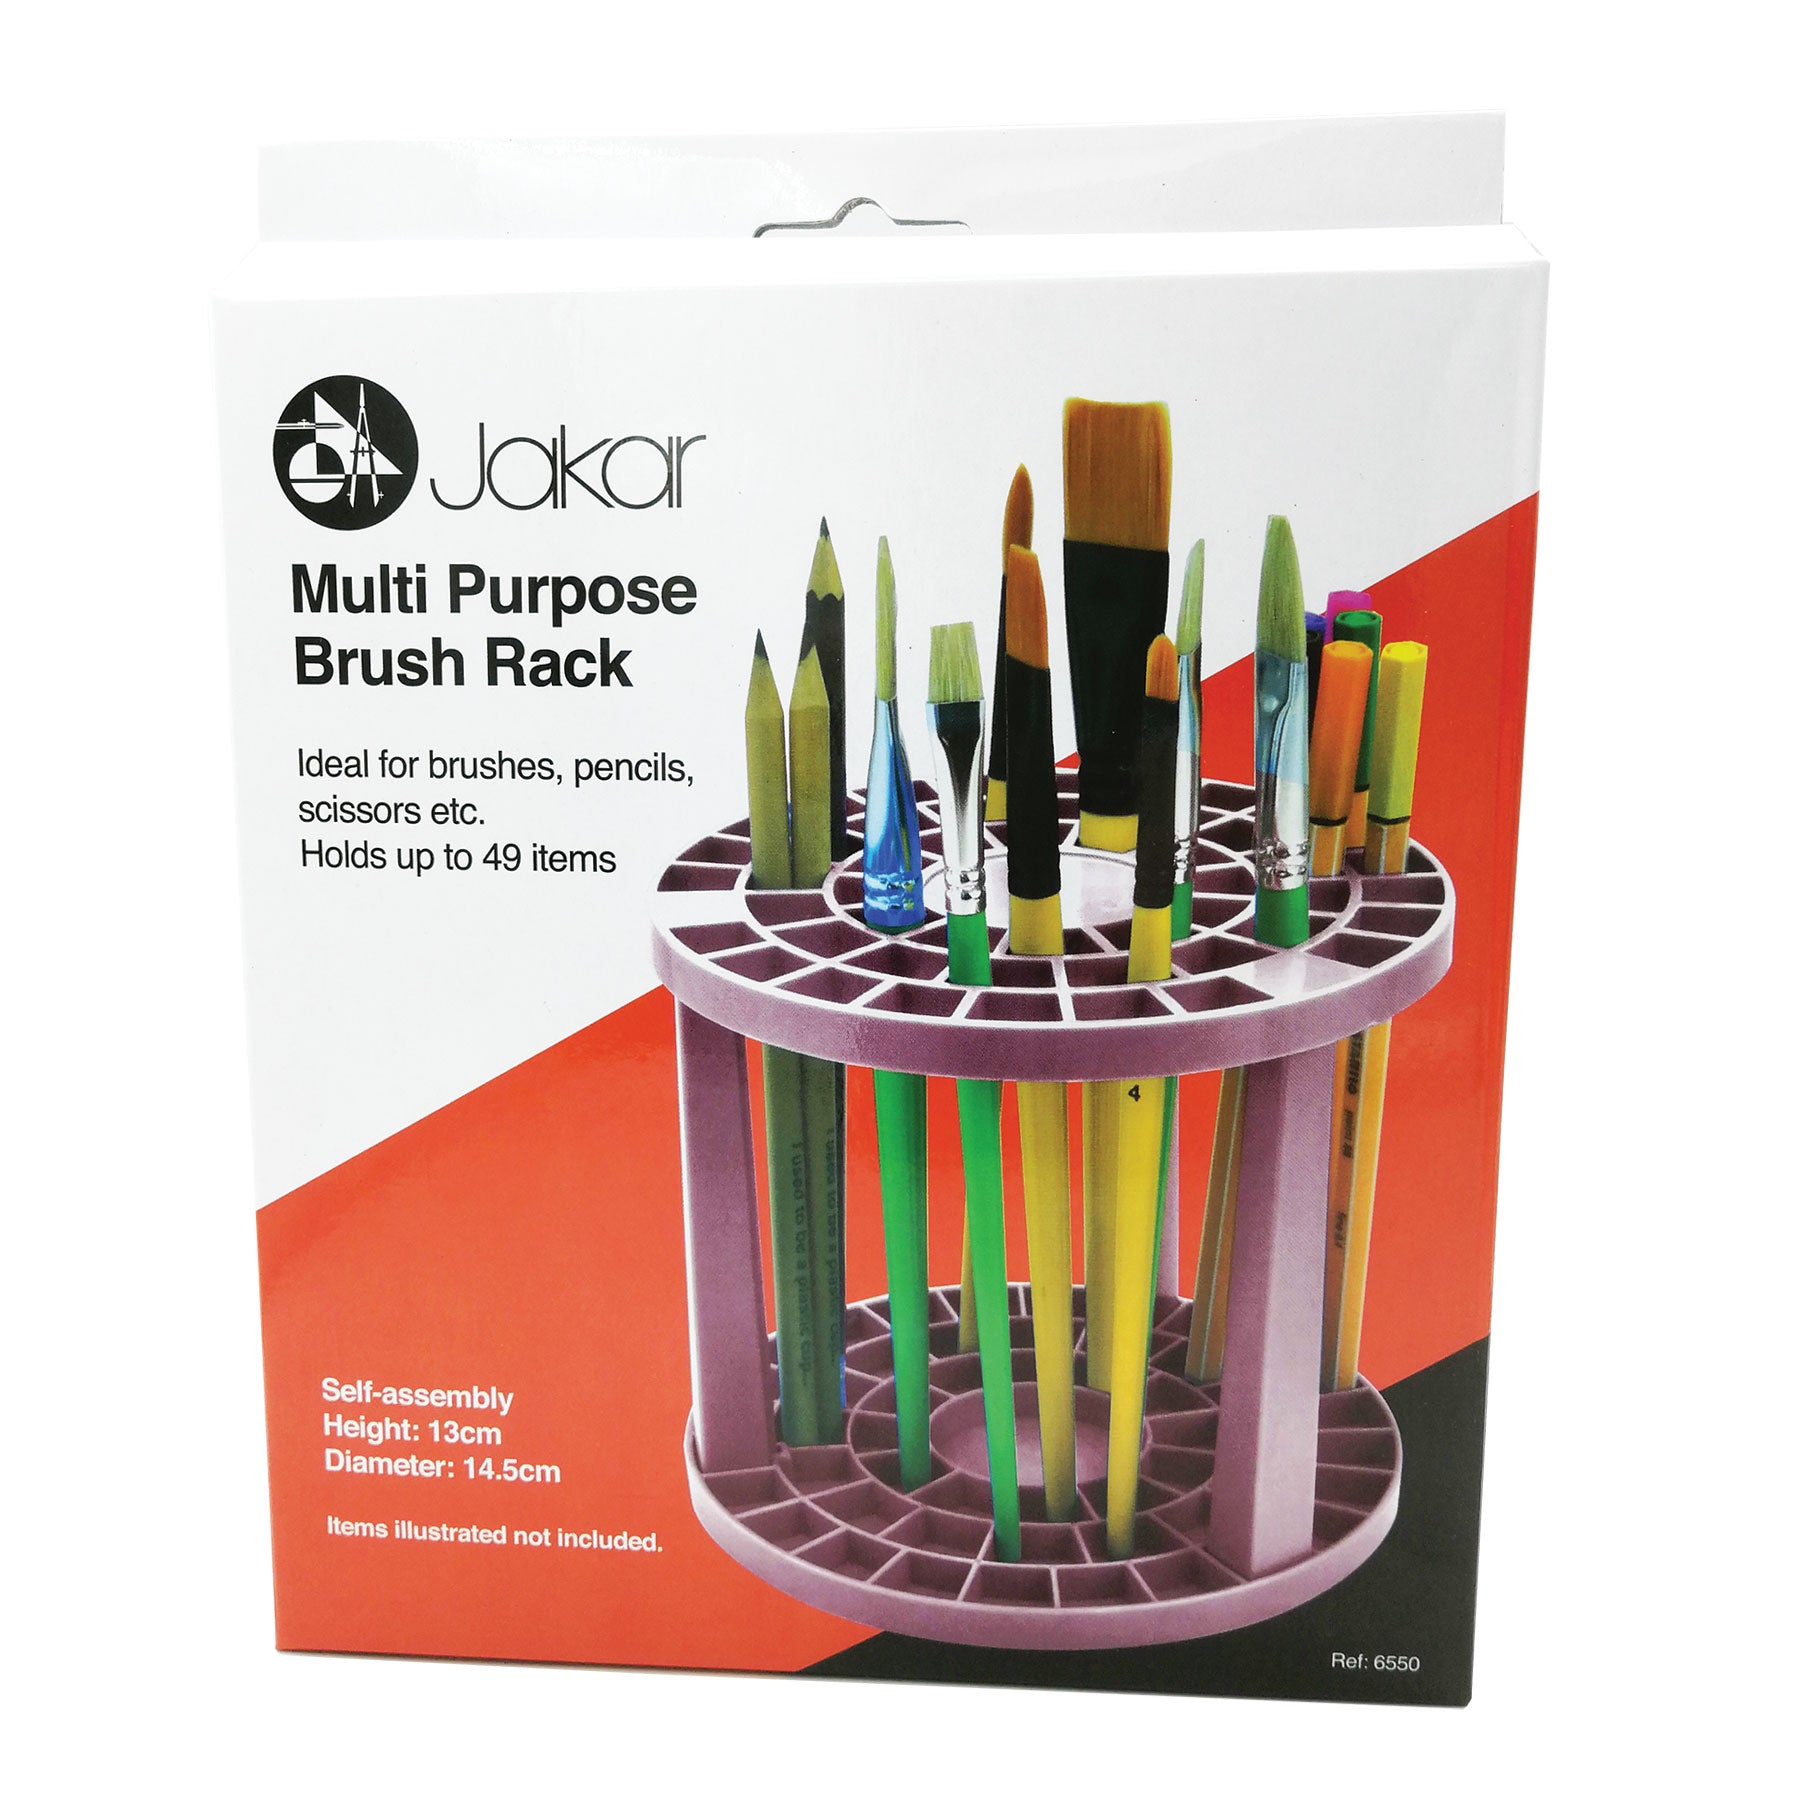 Jakar Multi-Purpose Brush Rack